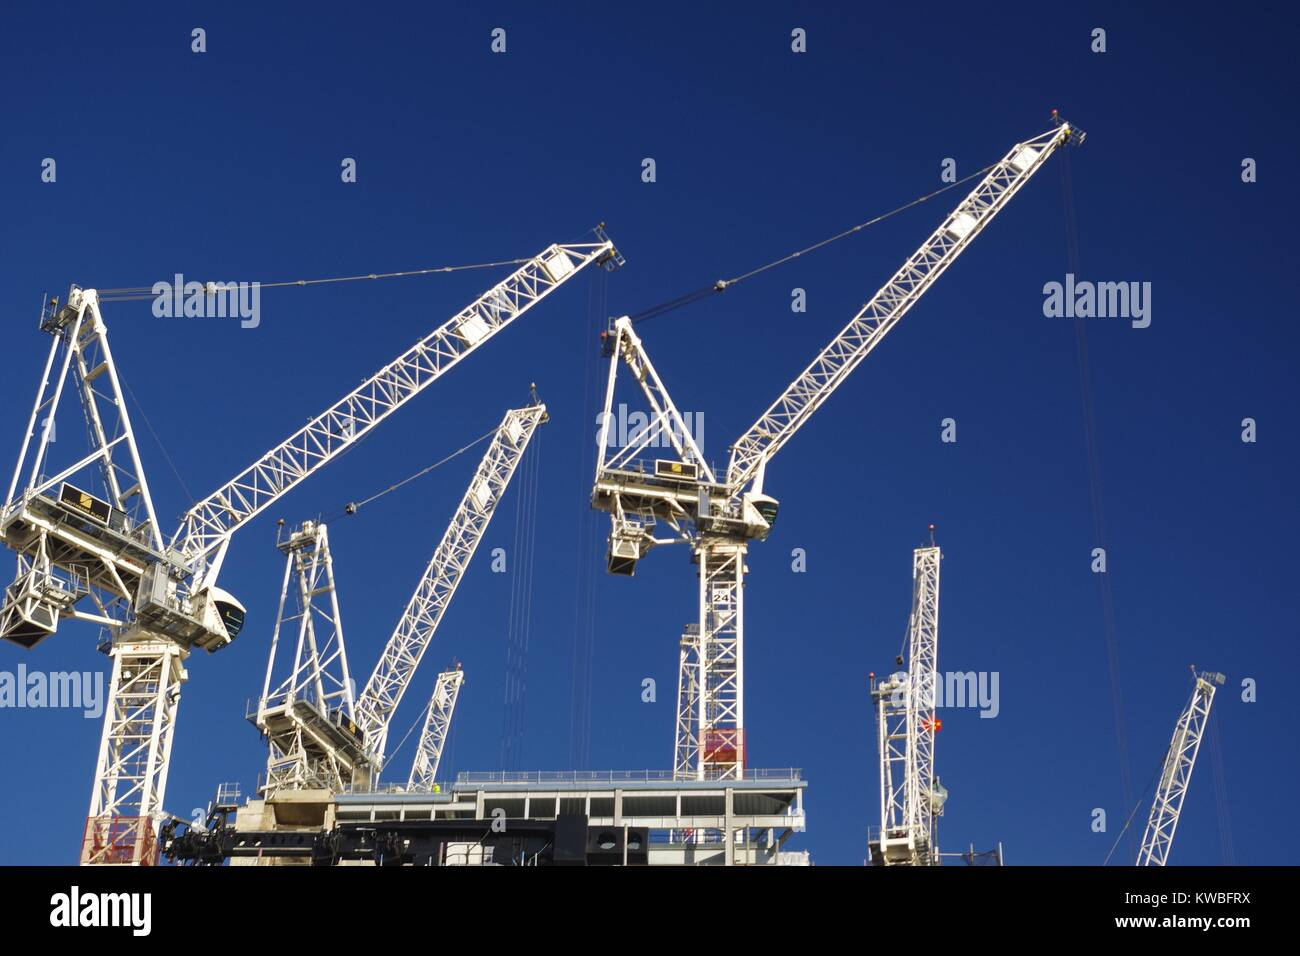 Team of White Tower Cranes against a Brilliant Blue Sky on a Central London Building Site. December, 2017. - Stock Image